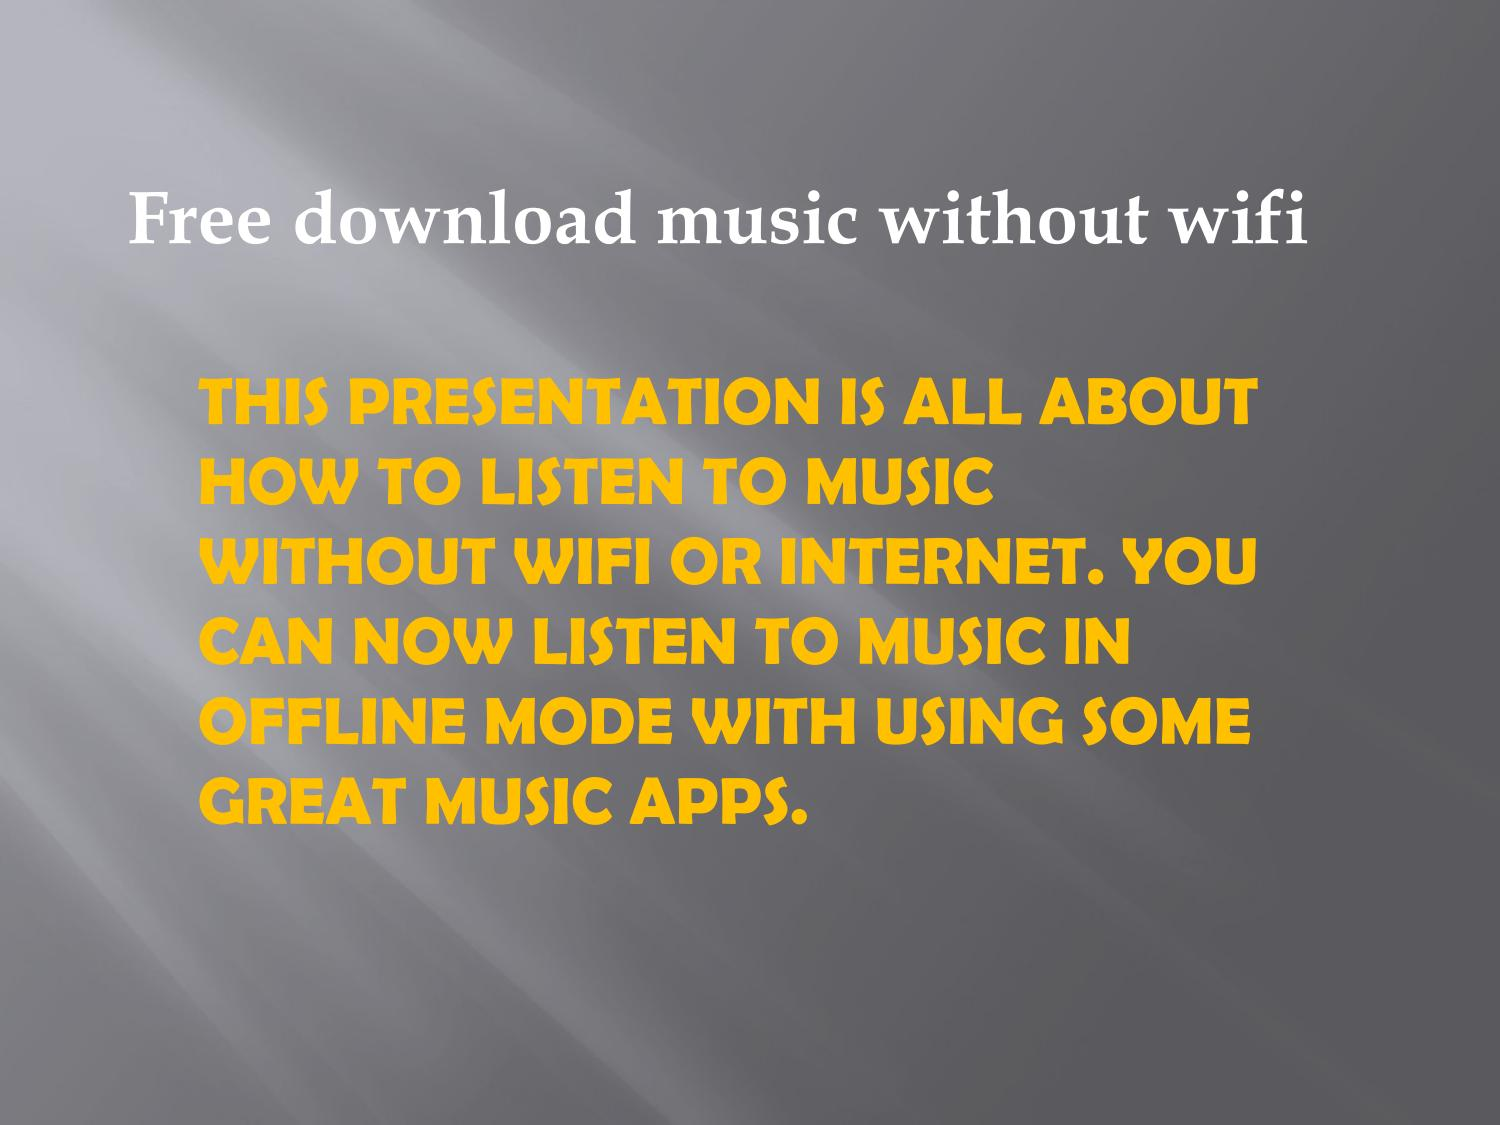 apps that let you download music without wifi